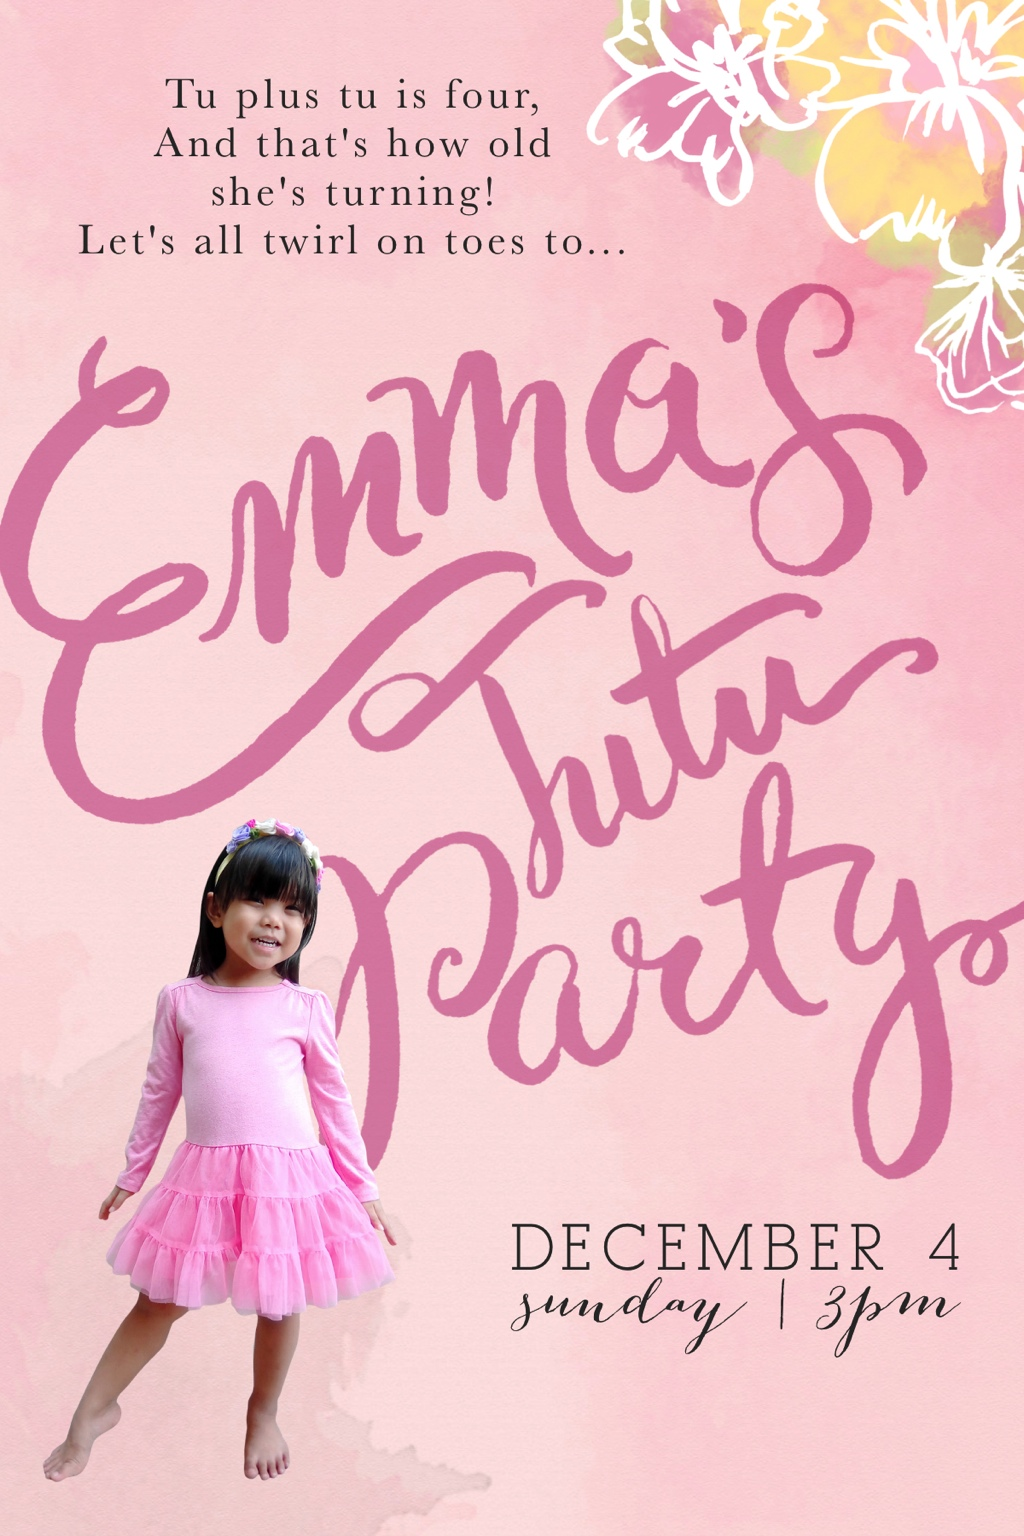 emmatutuparty-invite